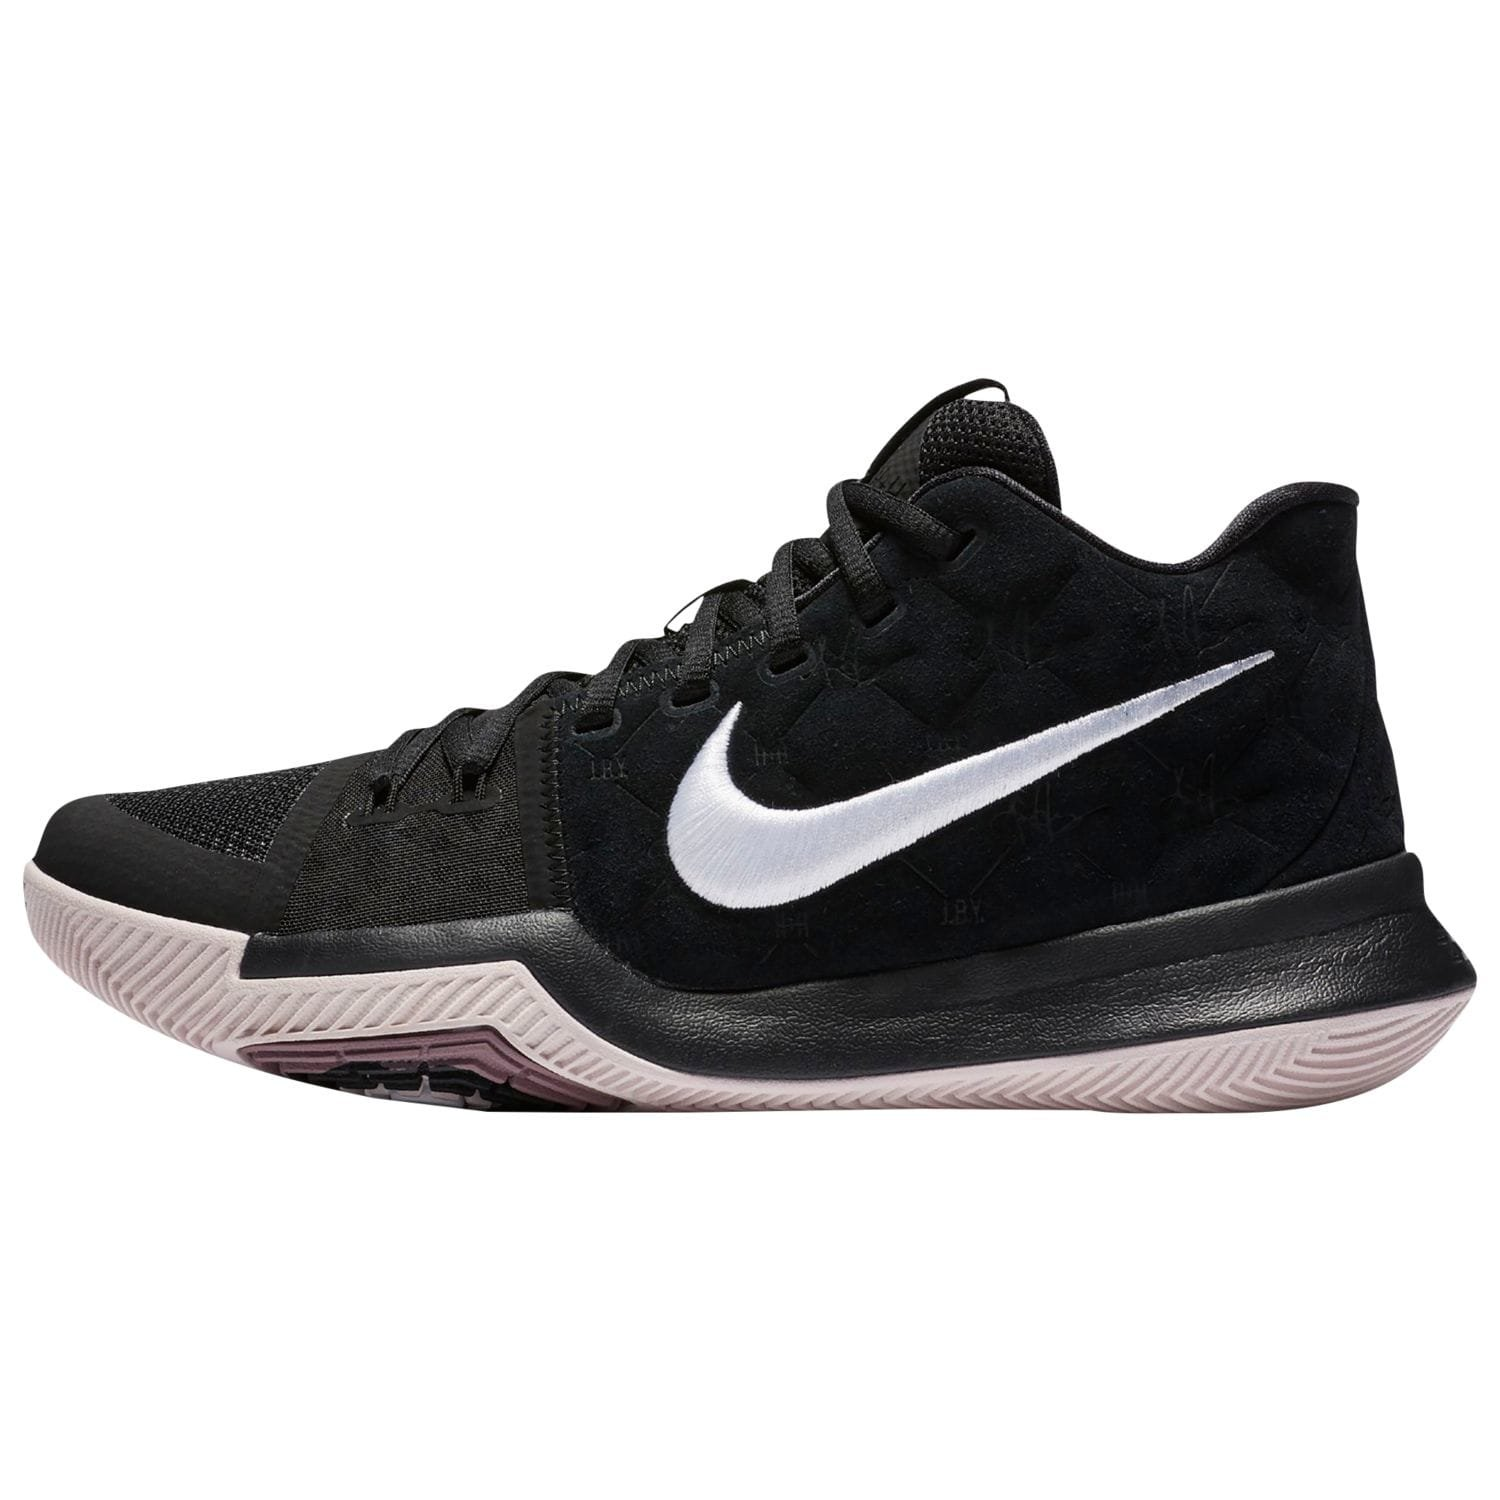 bc34d4c50f00 Amazon.com  NIKE Kyrie 3 Basketball Shoes Mens Kyrie Irving Black White-Silt  Red New 852395-010 - 7.5  Sports   Outdoors